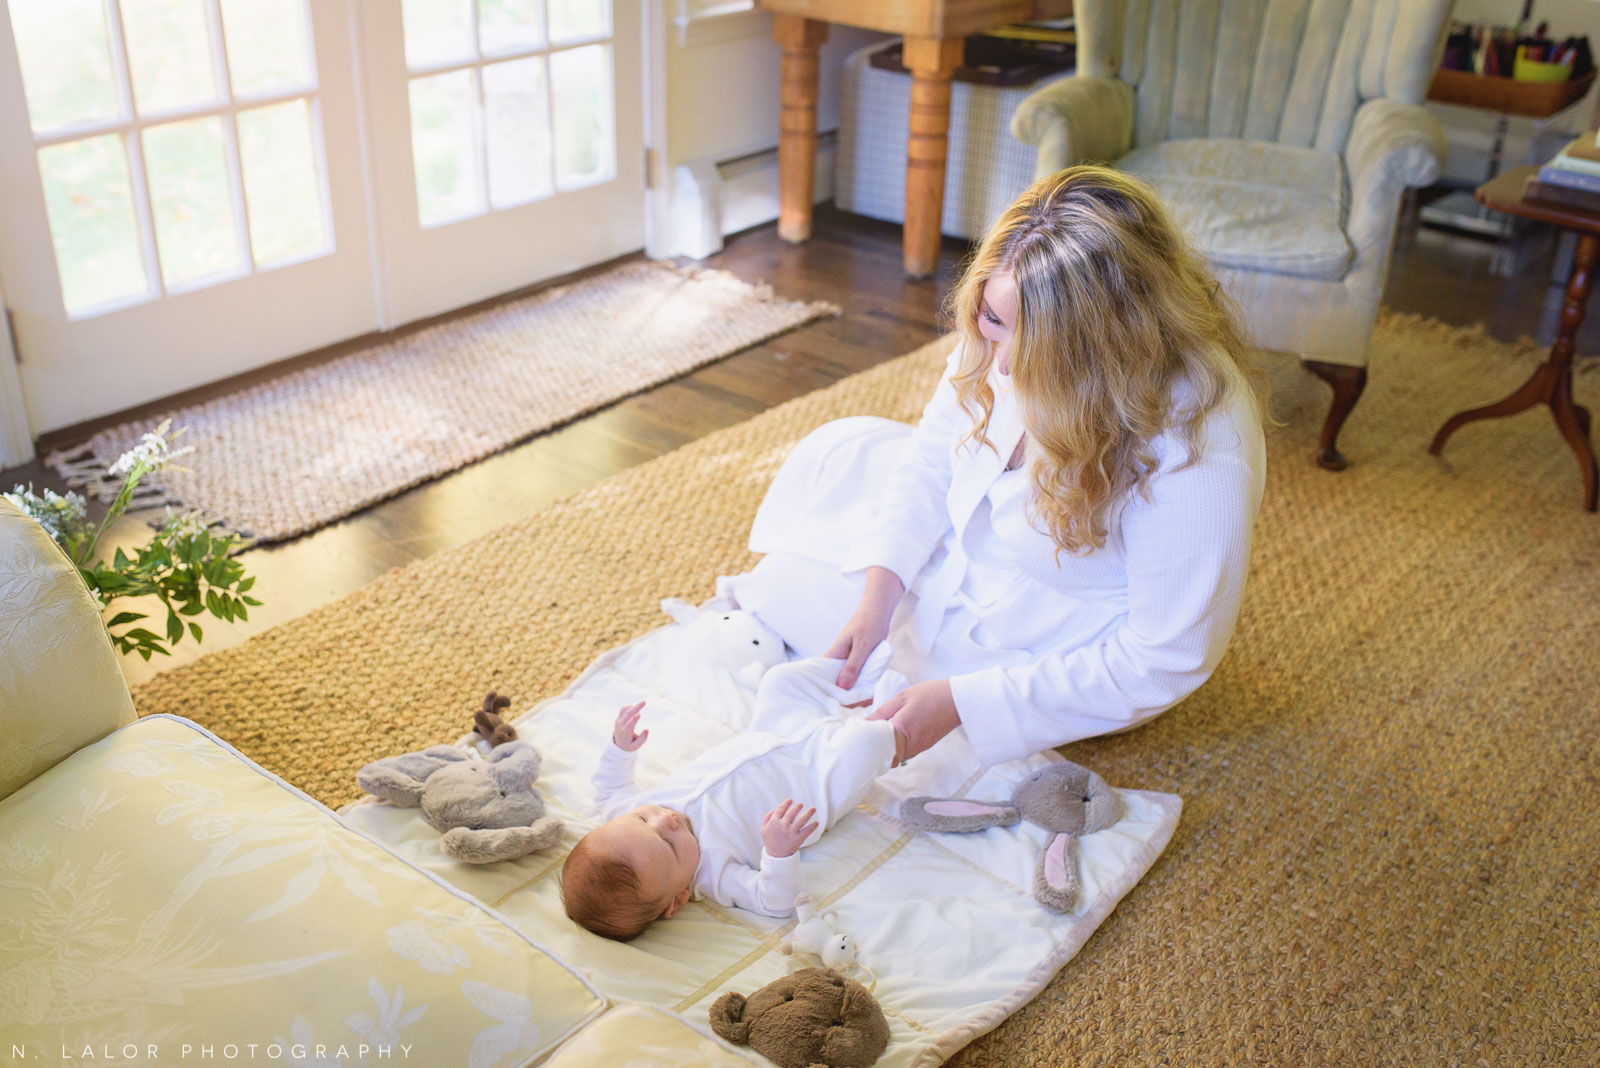 Baby morning exercises on the floor play mat. Photo by N. Lalor Photography. Fairfield County, Connecticut.